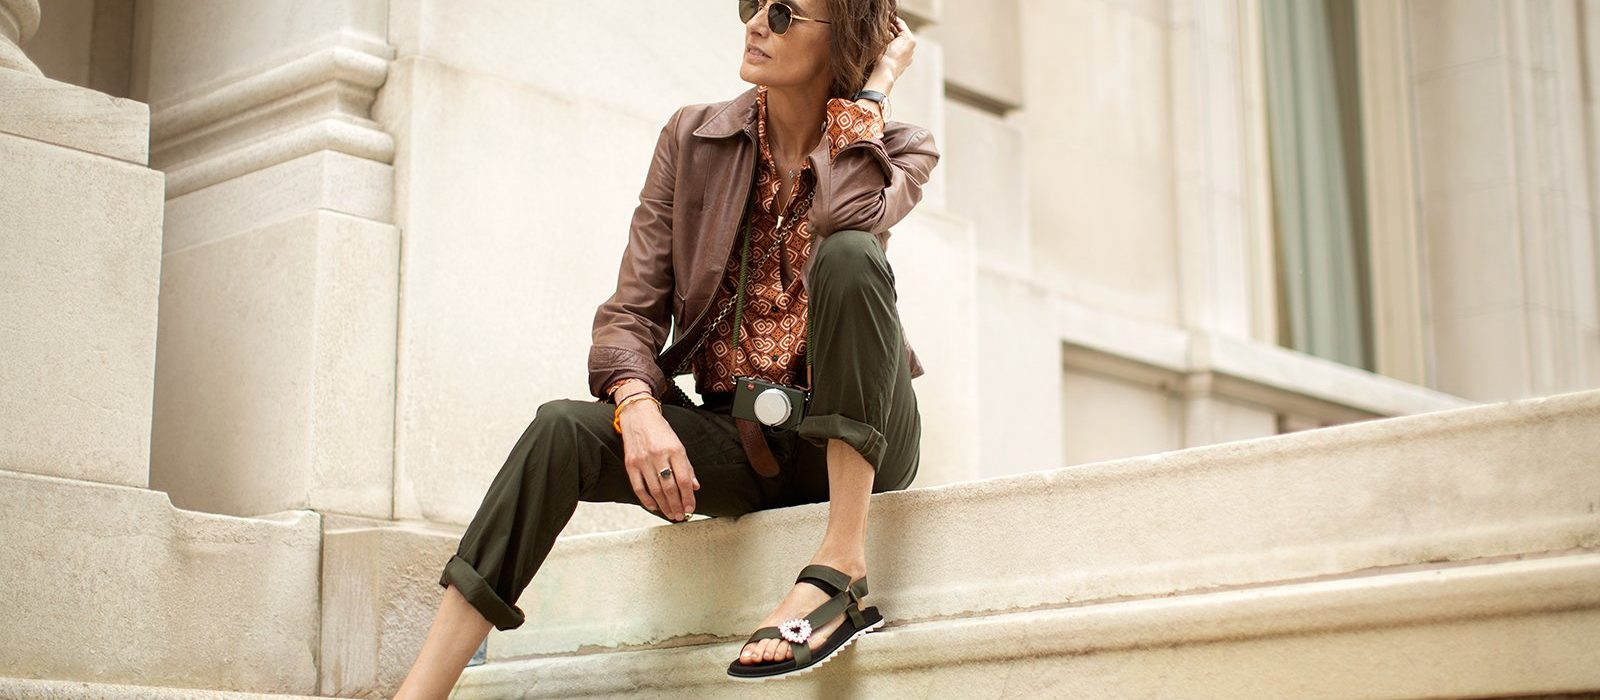 What to wear to look younger